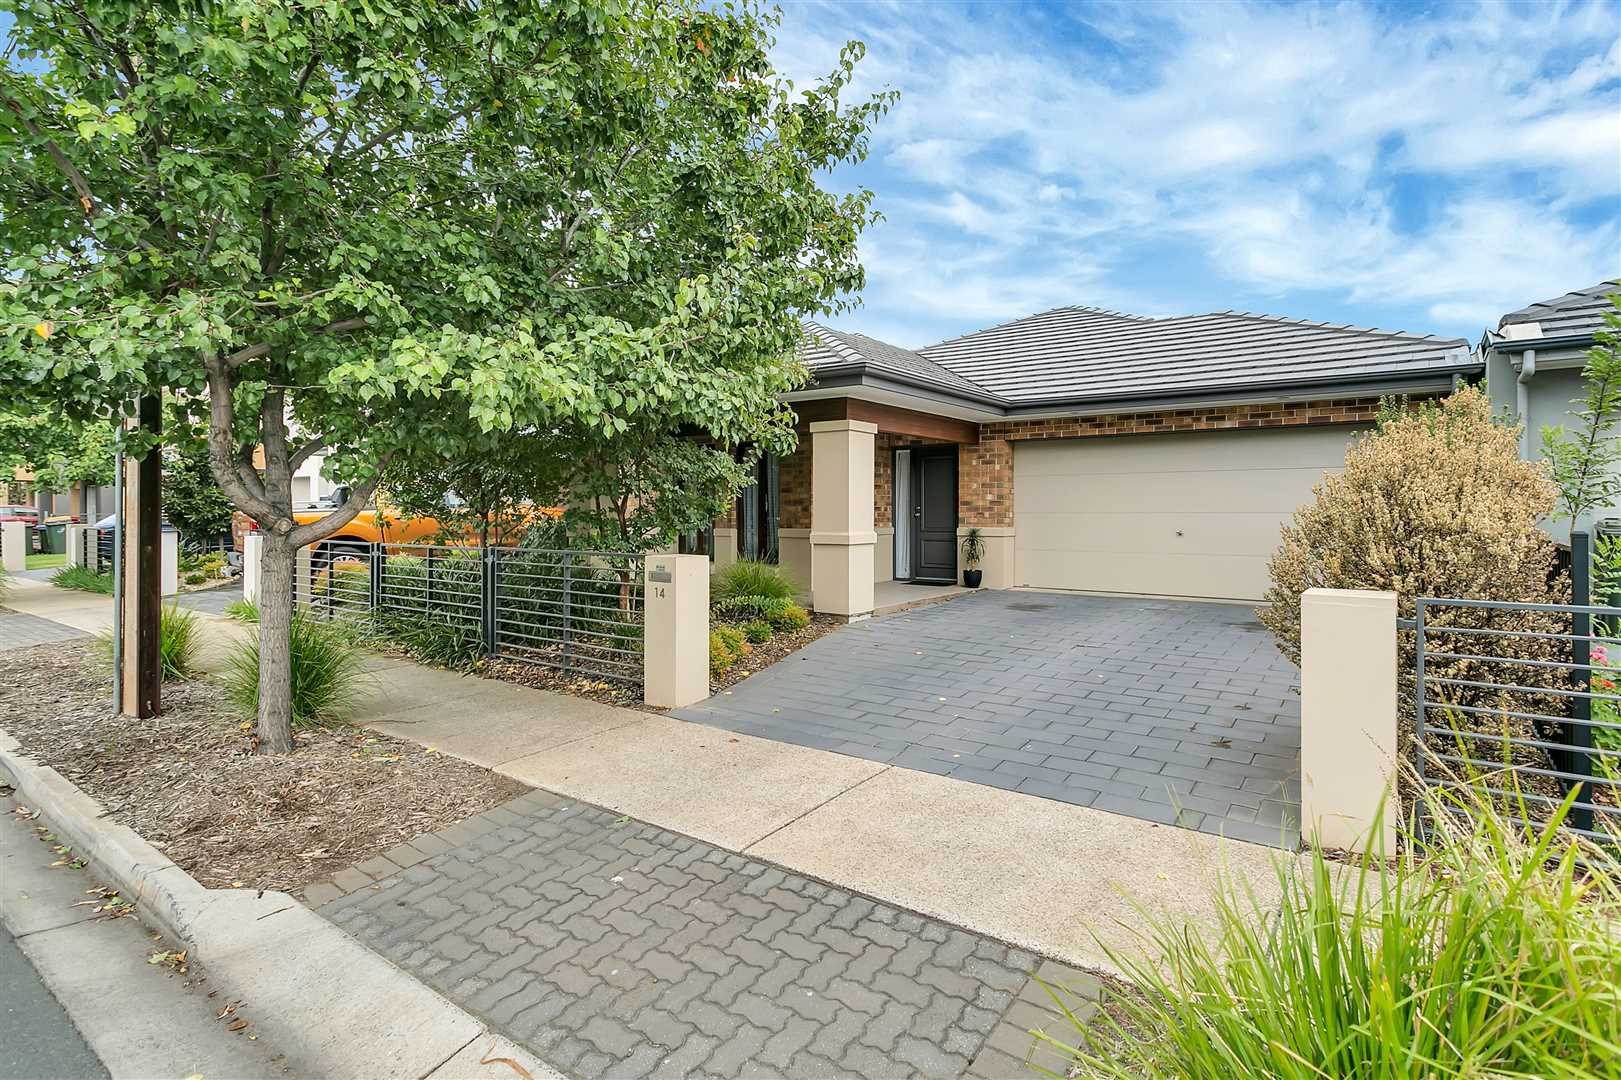 Under Contract  by Carlo Peluso 0414 427 680